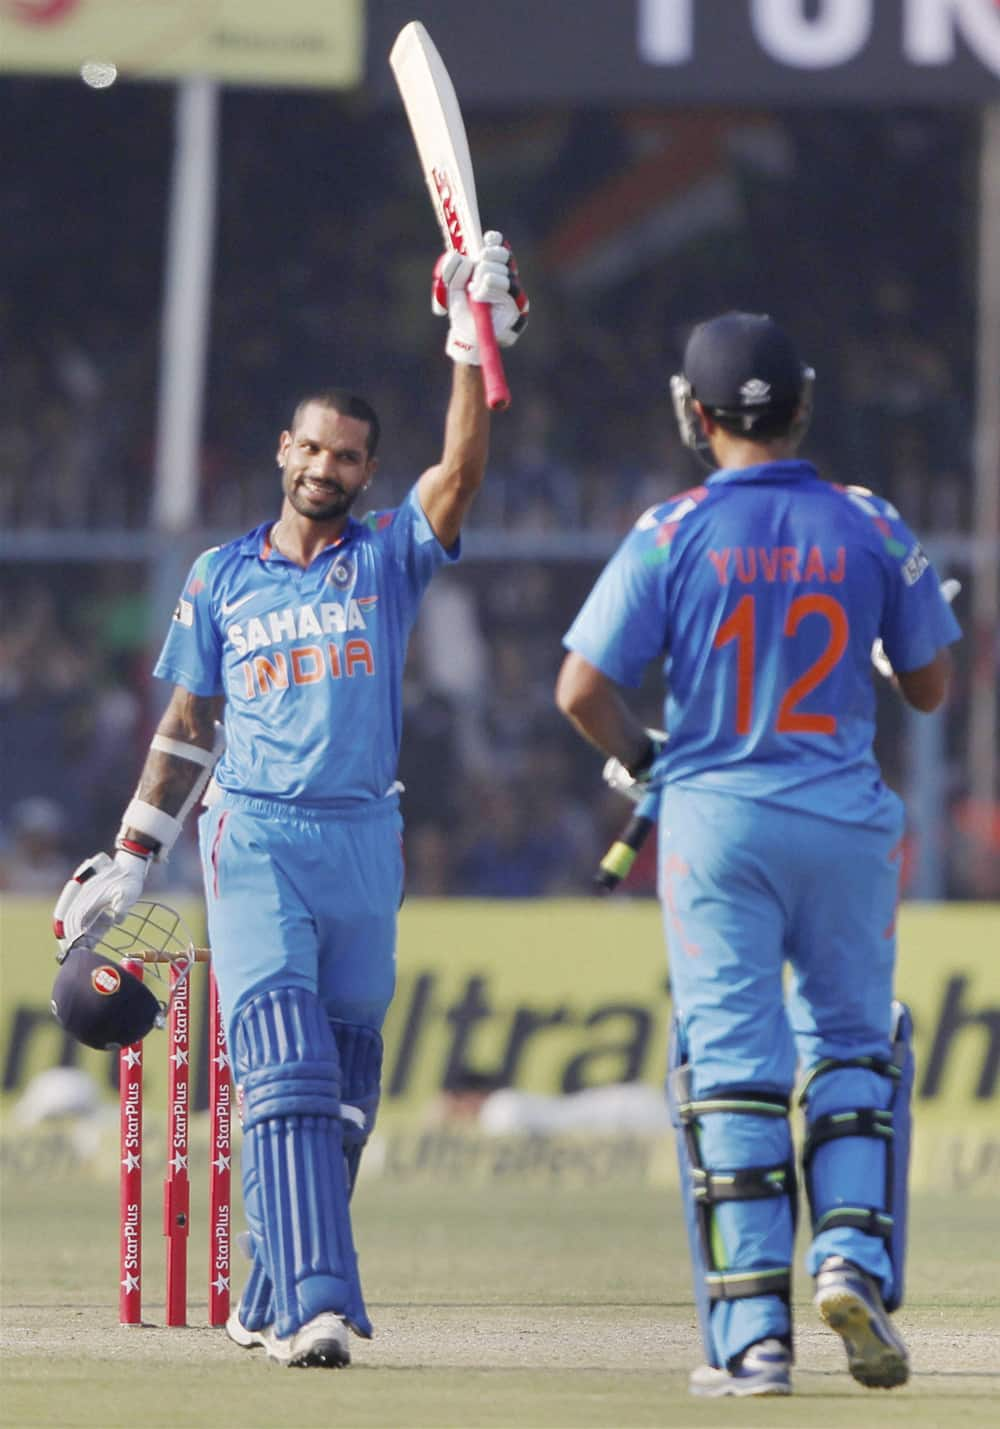 Shikar Dhawan raises the bat after his century during the last ODI cricket match against West Indies at Green Park Stadium in Kanpur.